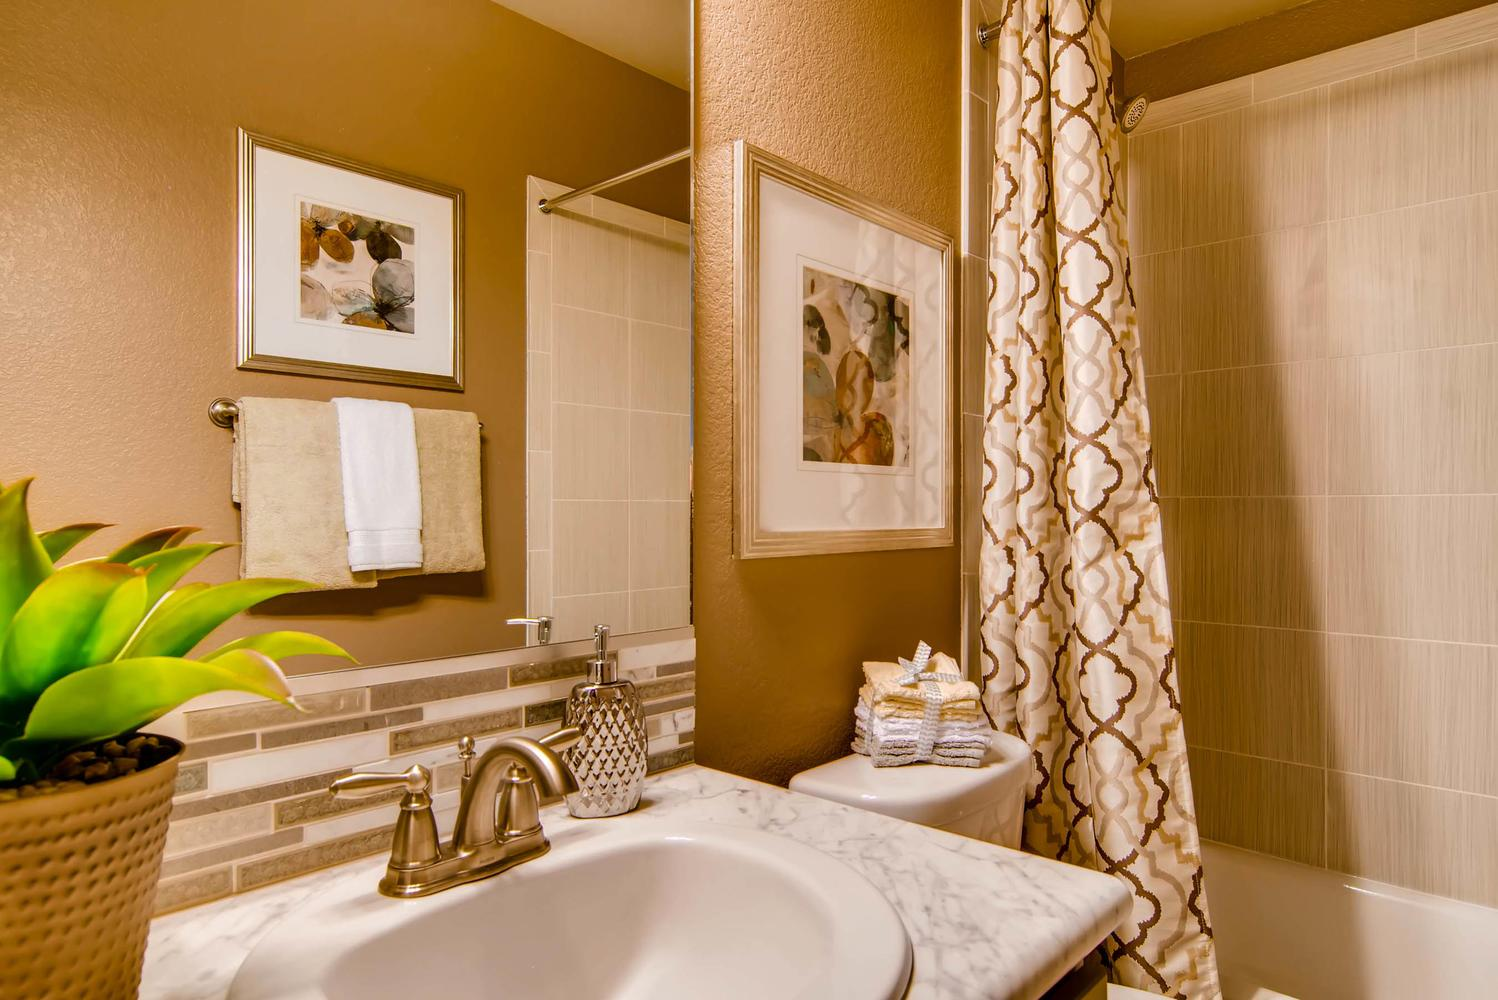 Bathroom featured in the Hannah By Classic Homes in Colorado Springs, CO